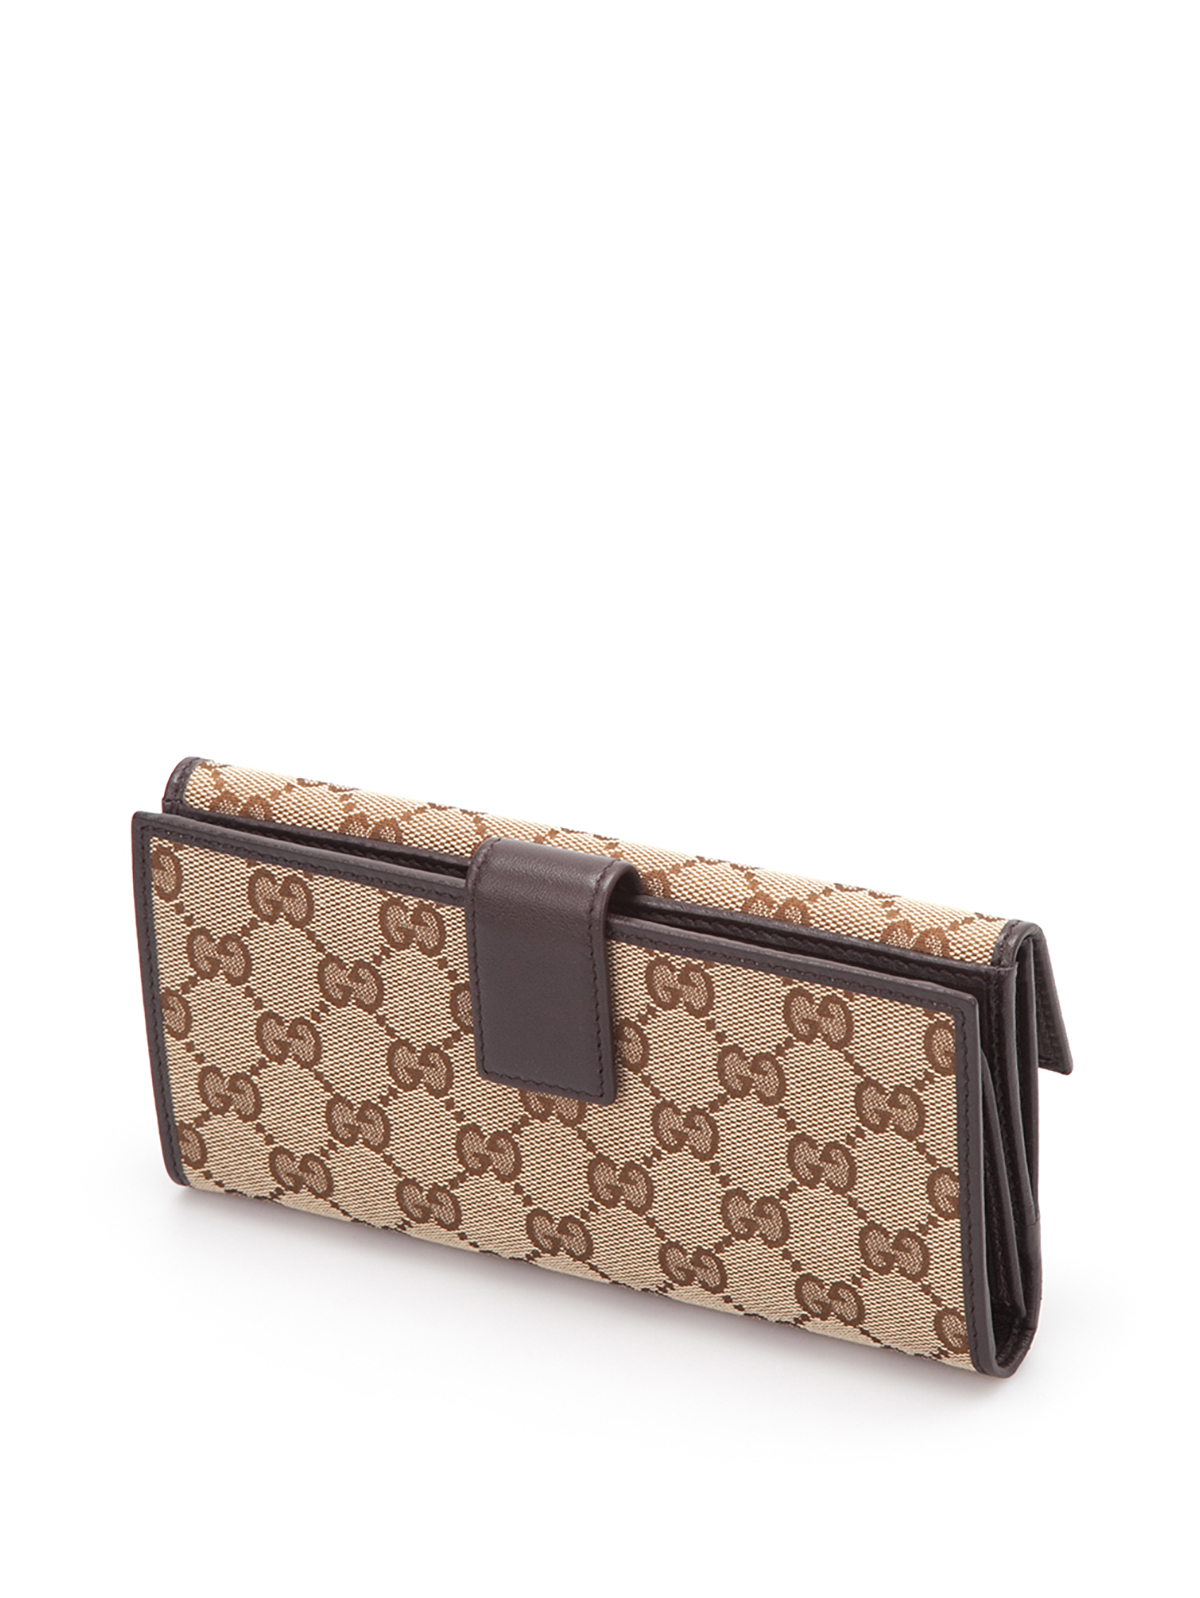 Gucci Gg Canvas Continental Wallet Wallets Amp Purses